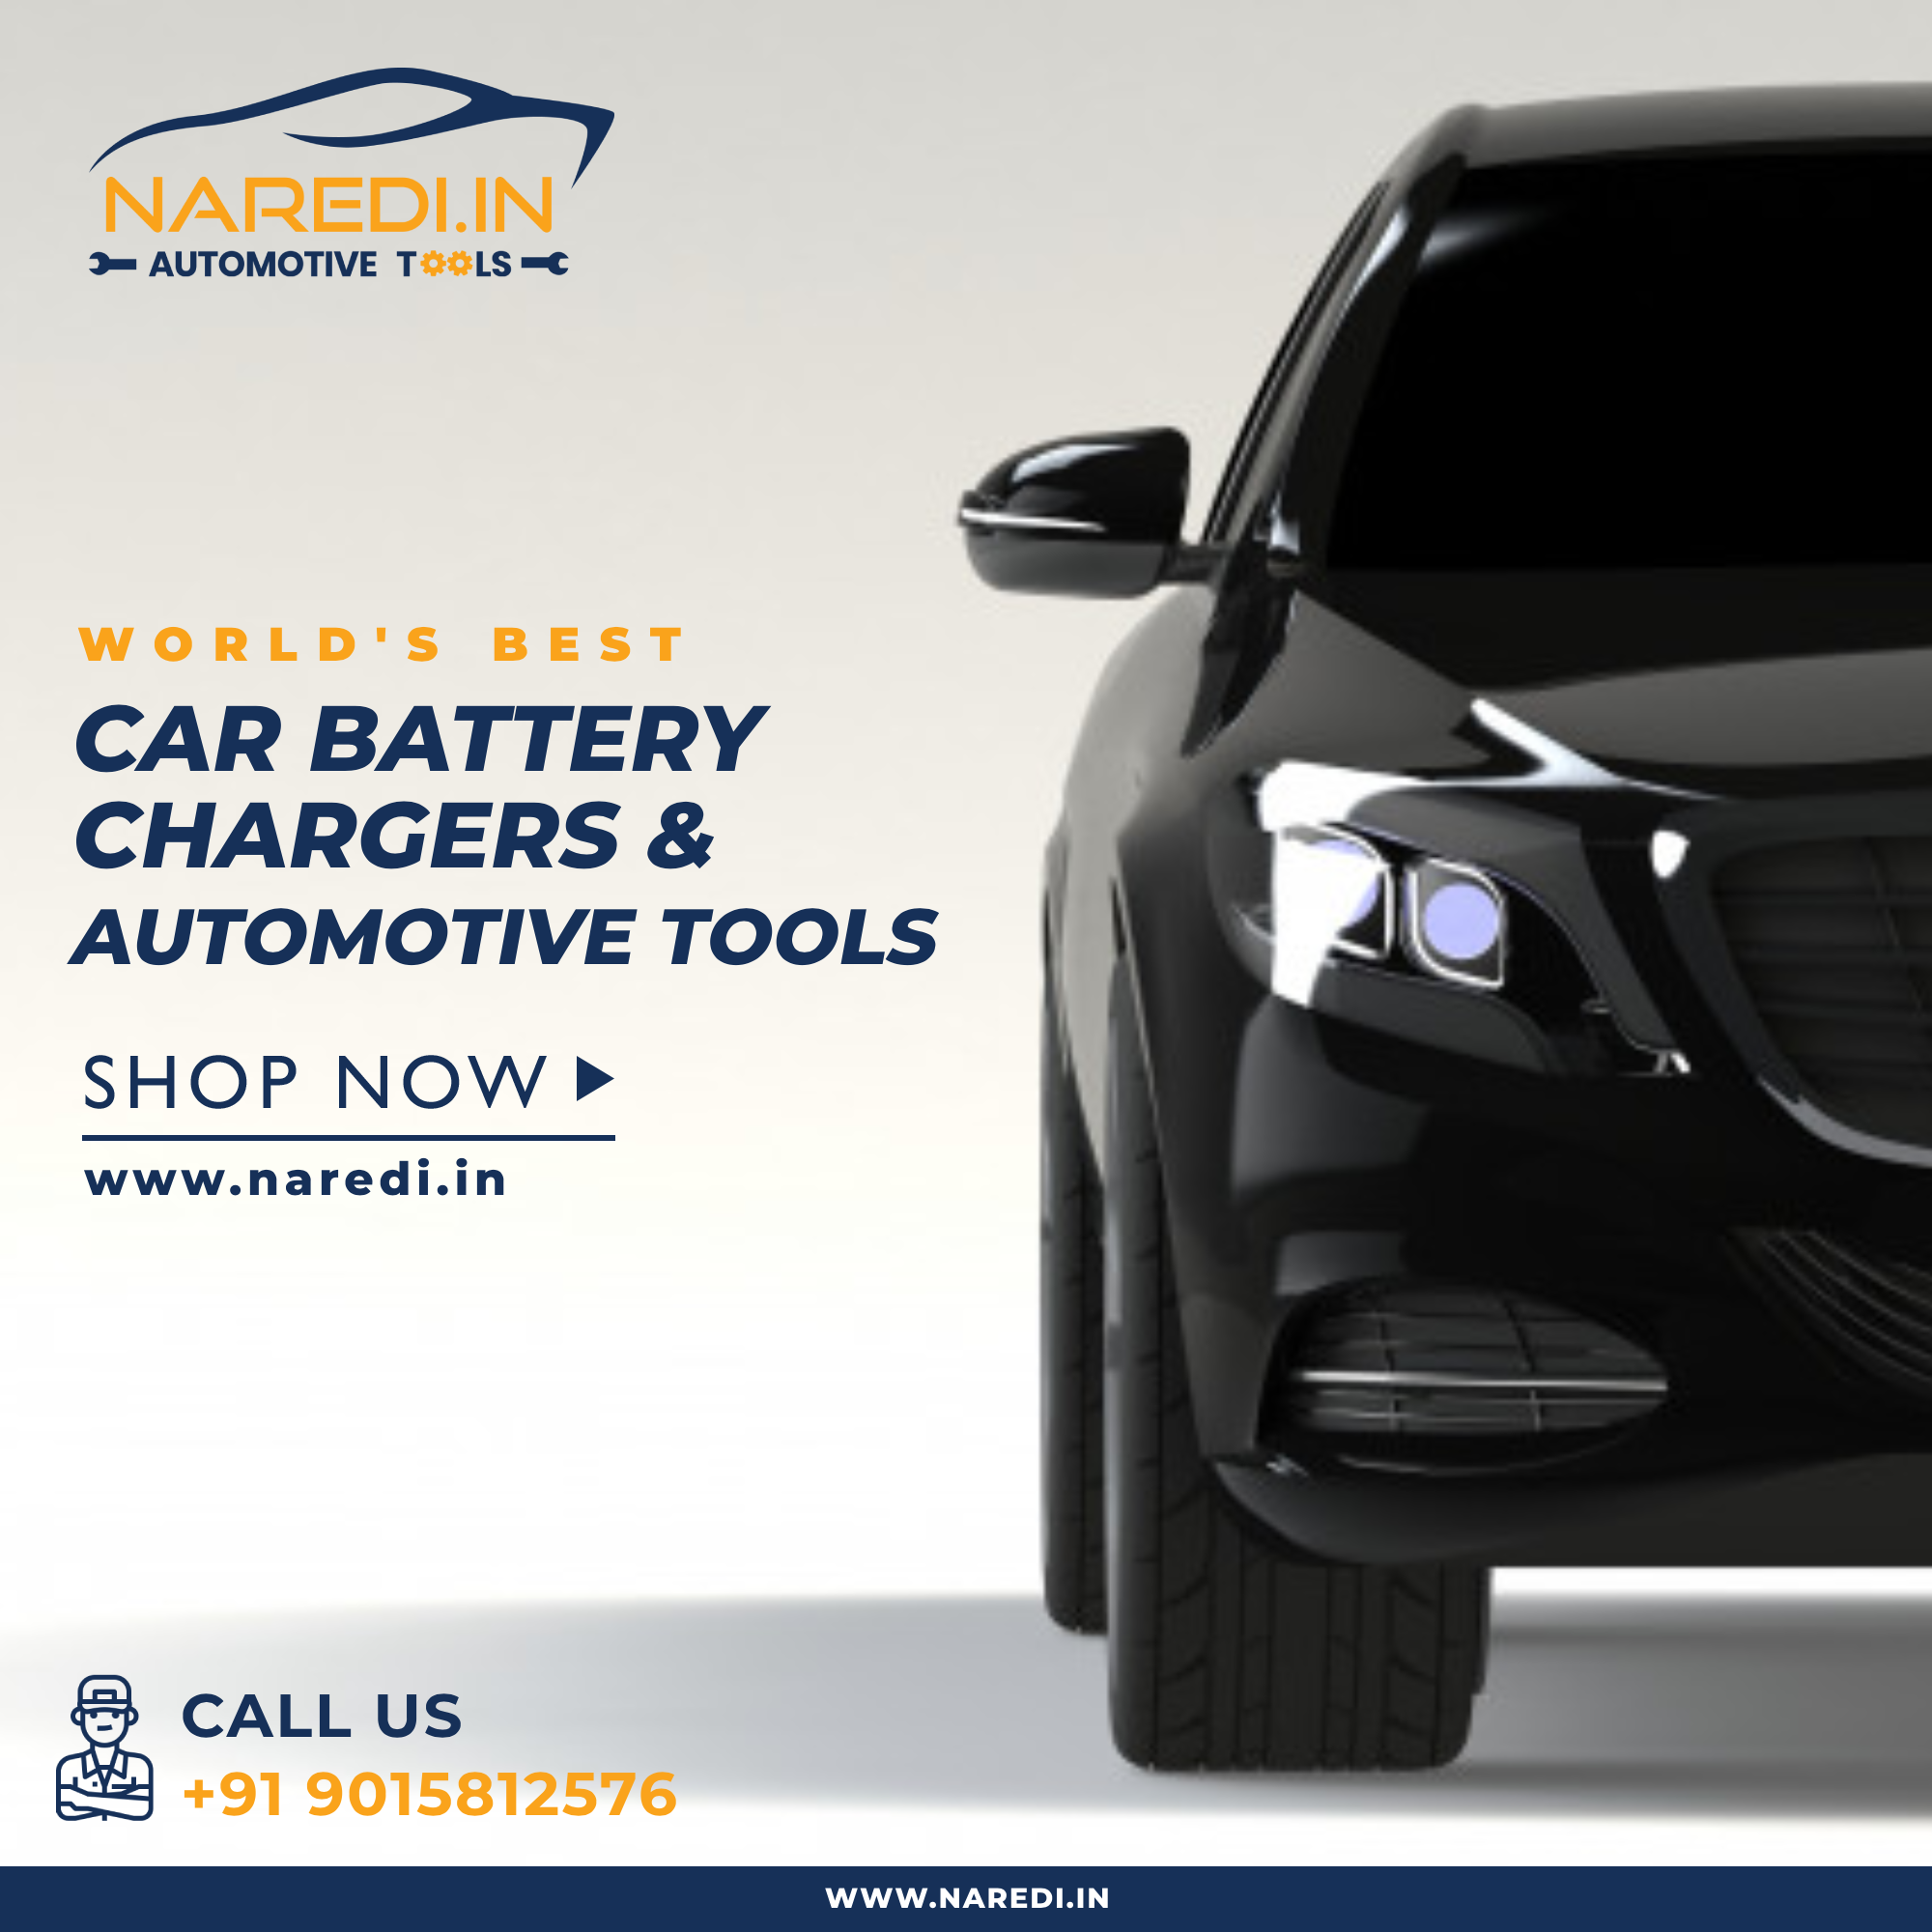 World S Best Car Battery Chargers Automotive Tools Contact Us At 91 9015812576 Or Visit Our Website Naredi In Fo In 2020 Car Battery Car Battery Chargers Car Tools